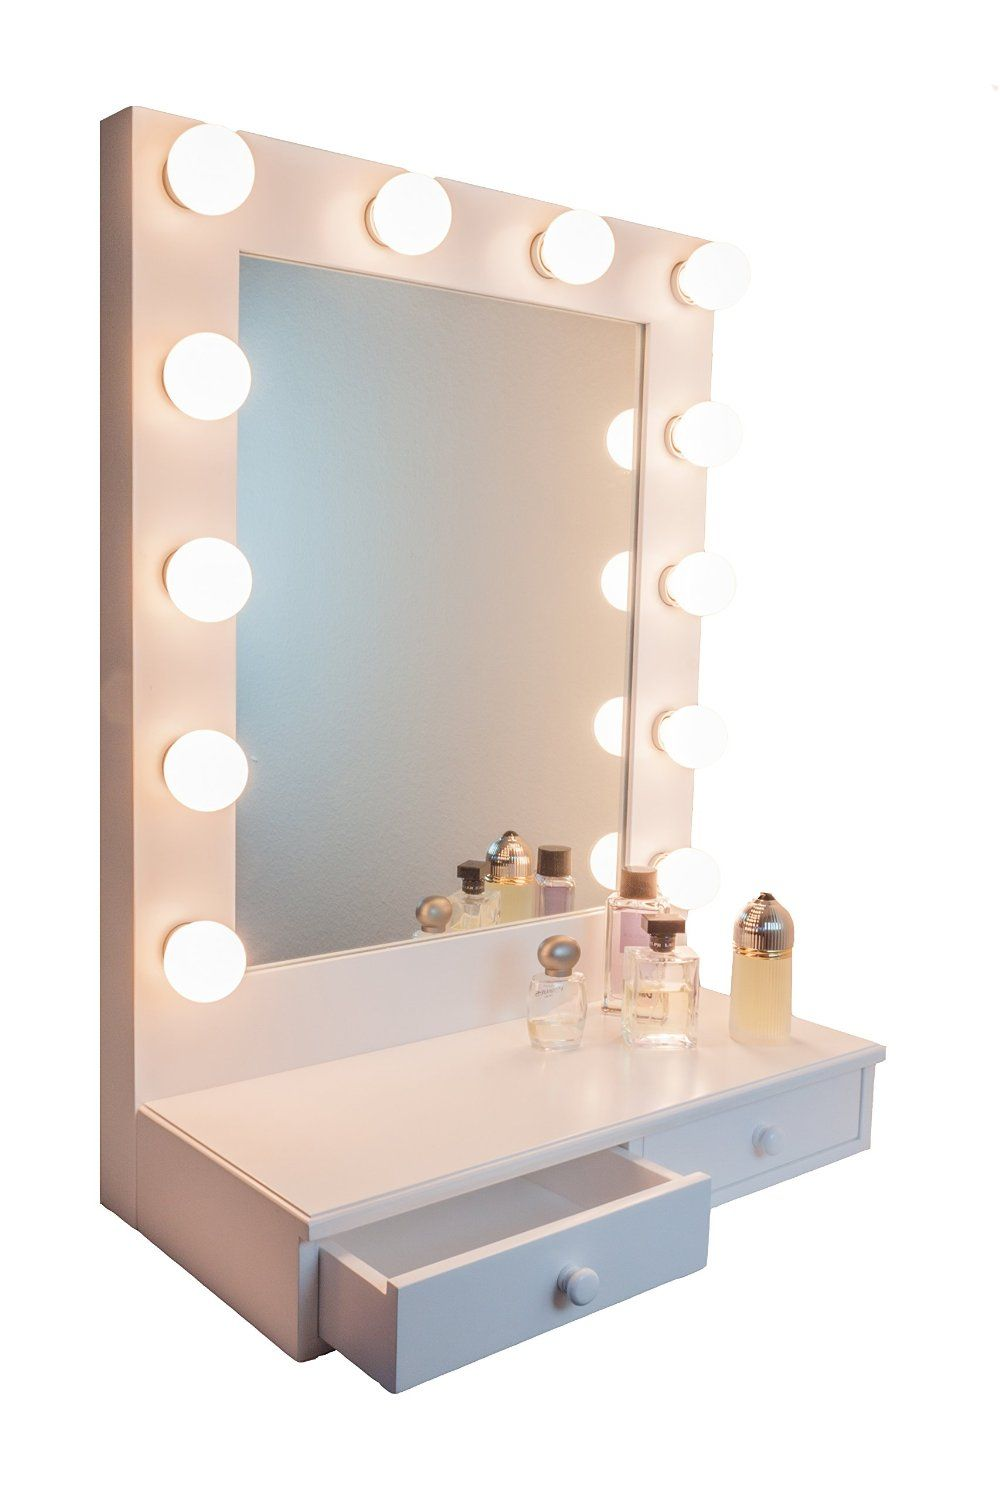 Ideas For Making Your Own Vanity Mirror With Lights Diy Or Buy Vanities Drawers And Room